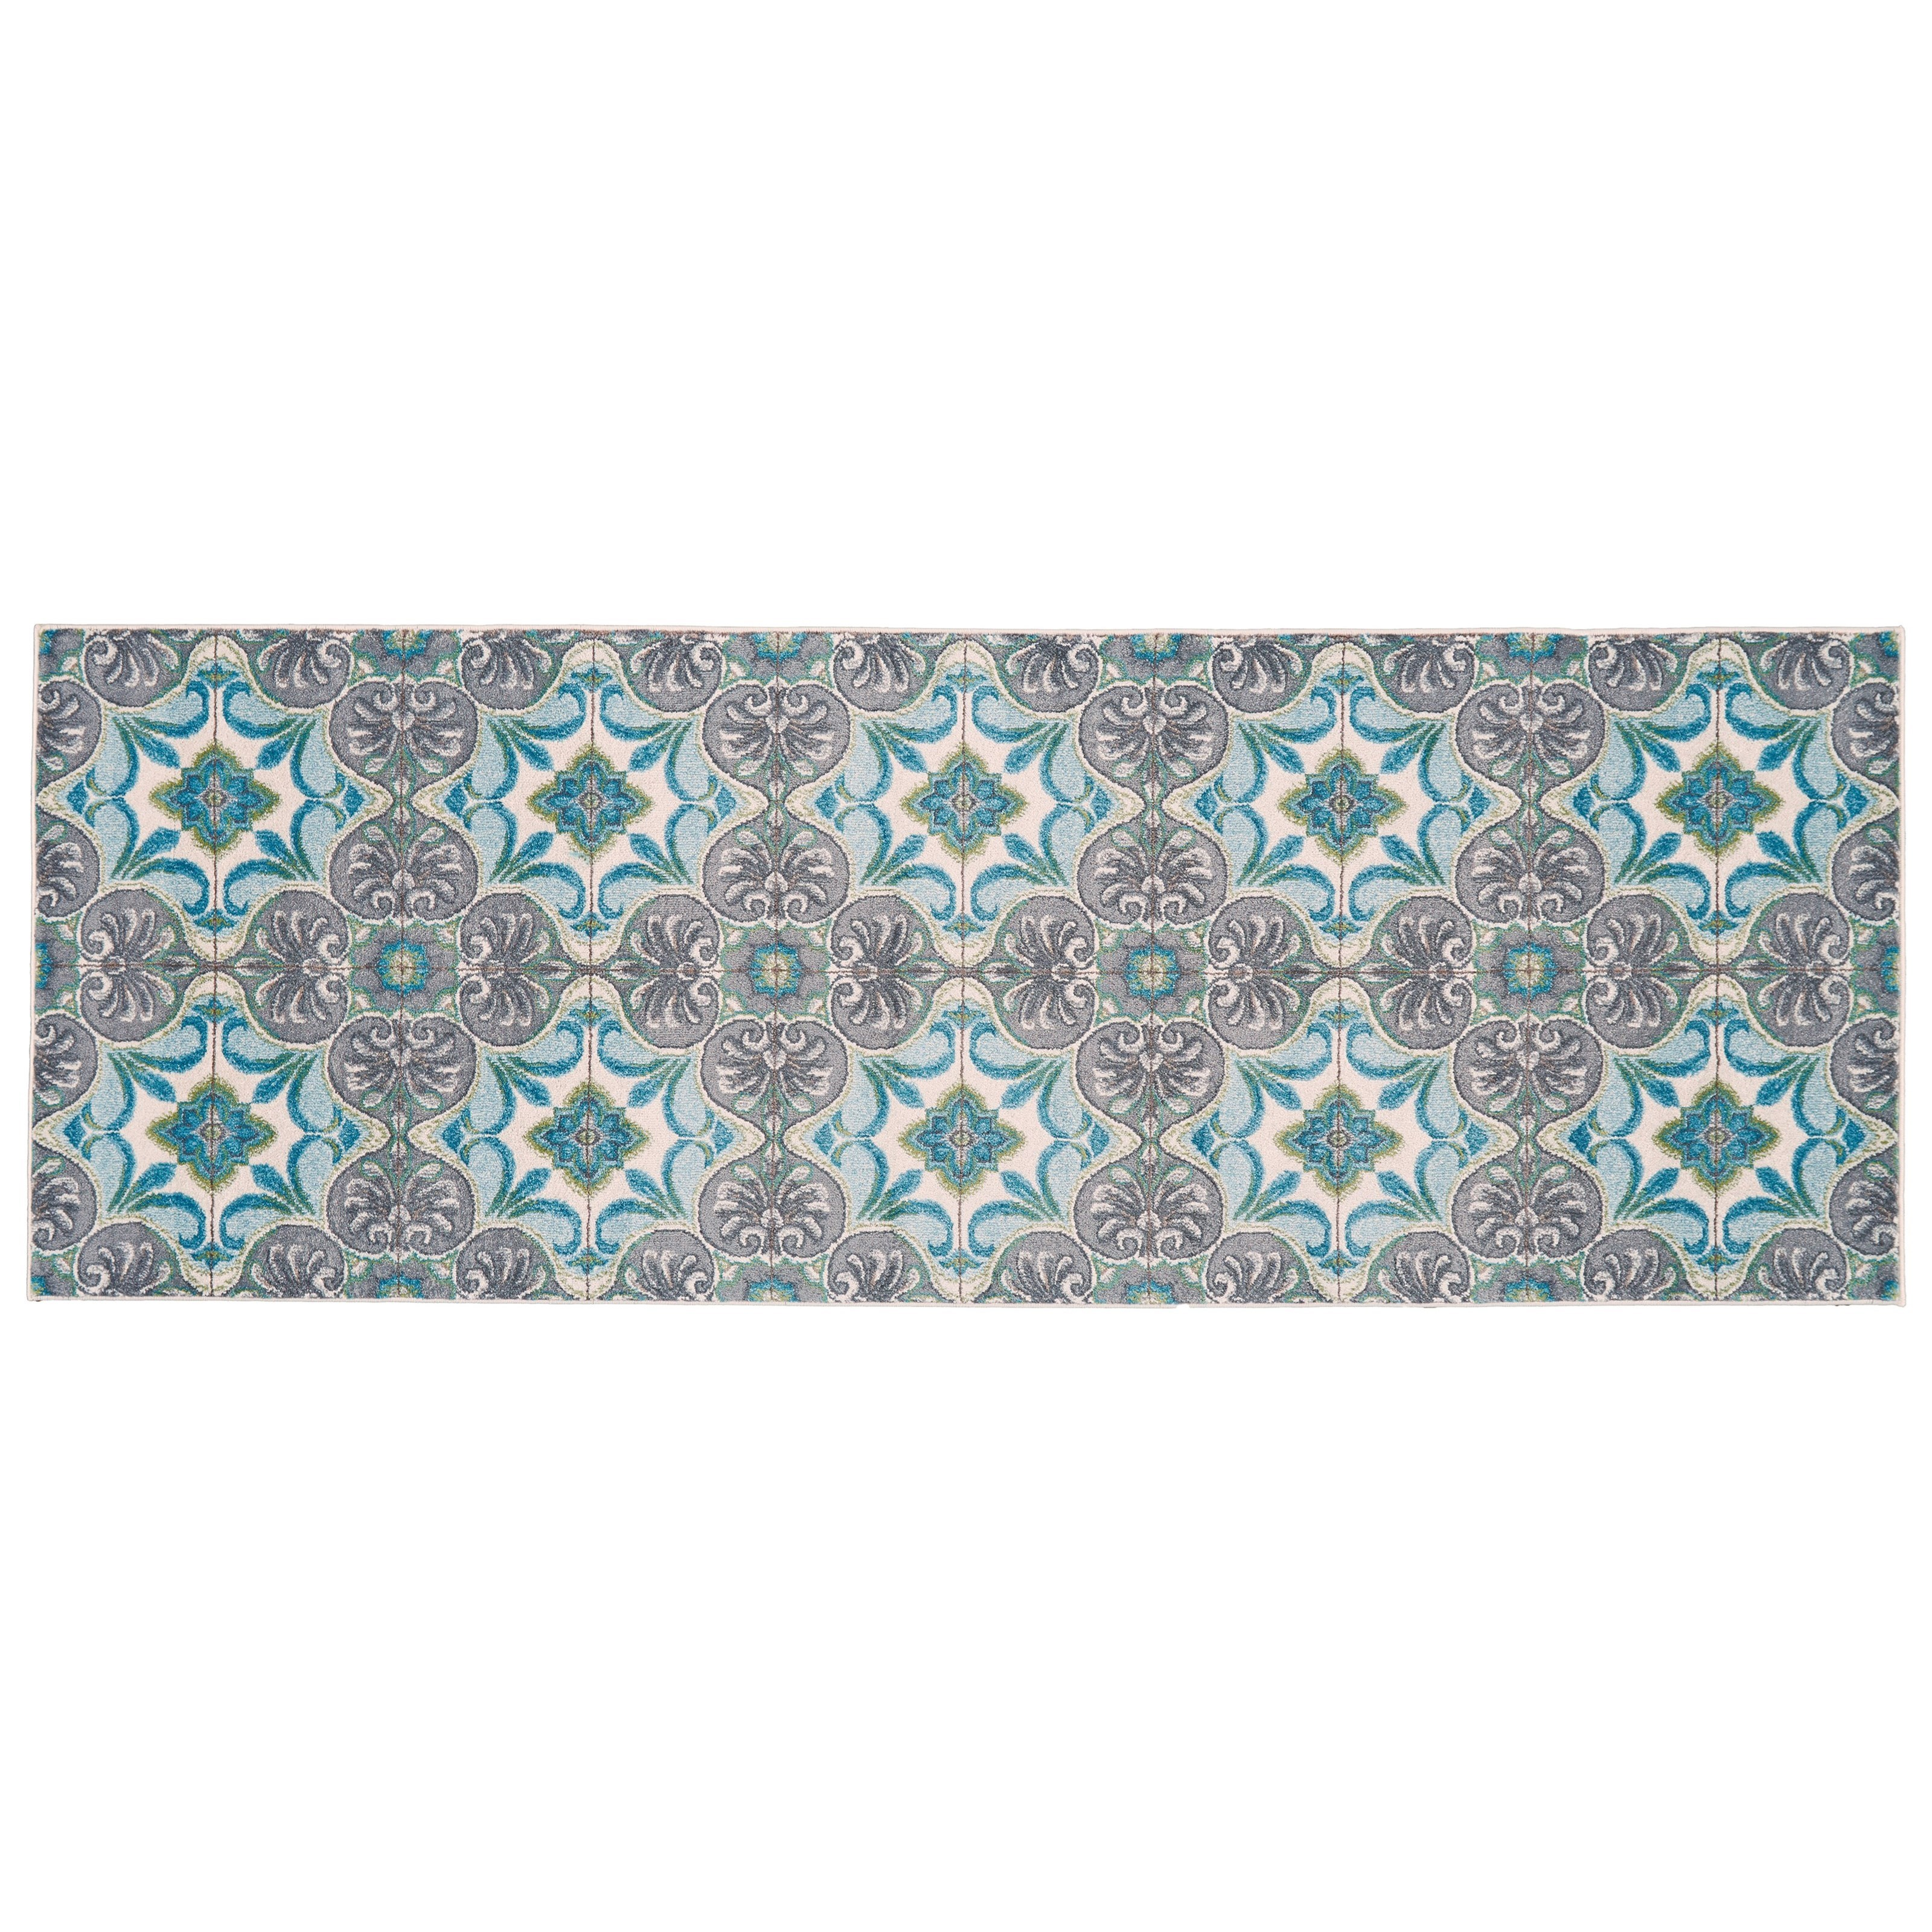 """Harlow Sea Glass 2'-10"""" X 7'-10"""" Runner Rug by Feizy Rugs at Sprintz Furniture"""